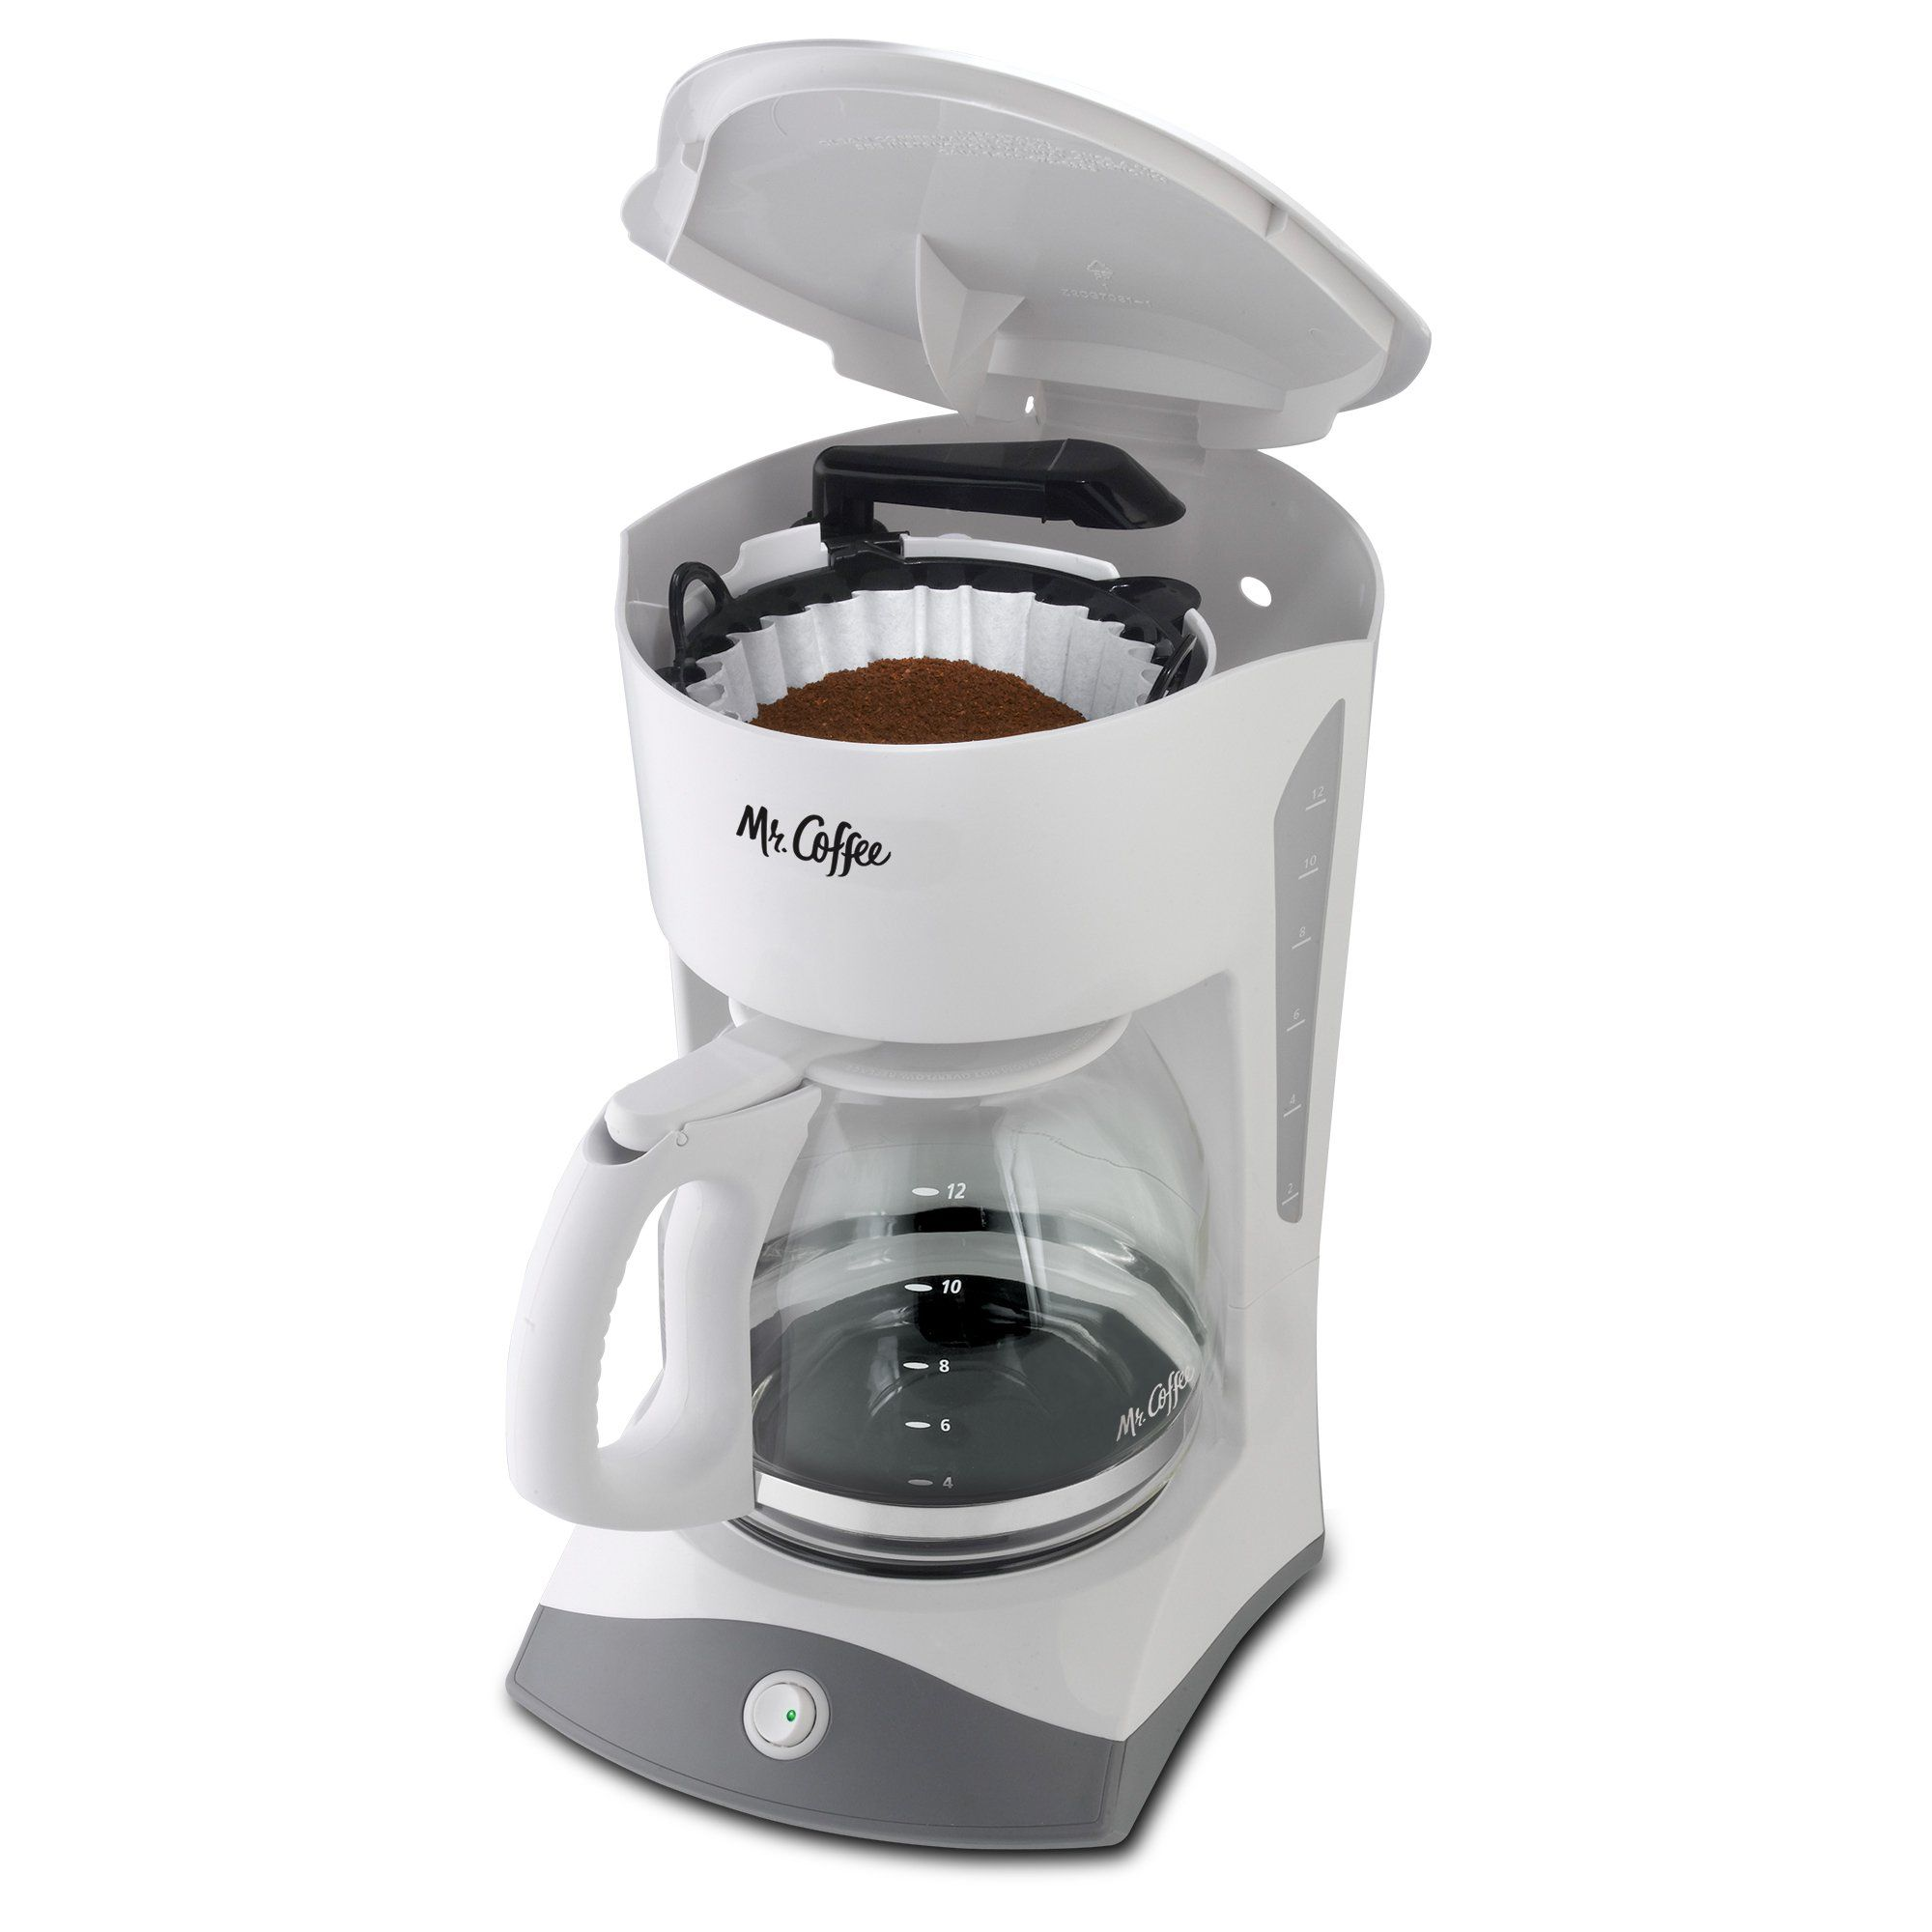 Mr. Coffee 12Cup Manual Coffee Maker White * You can get